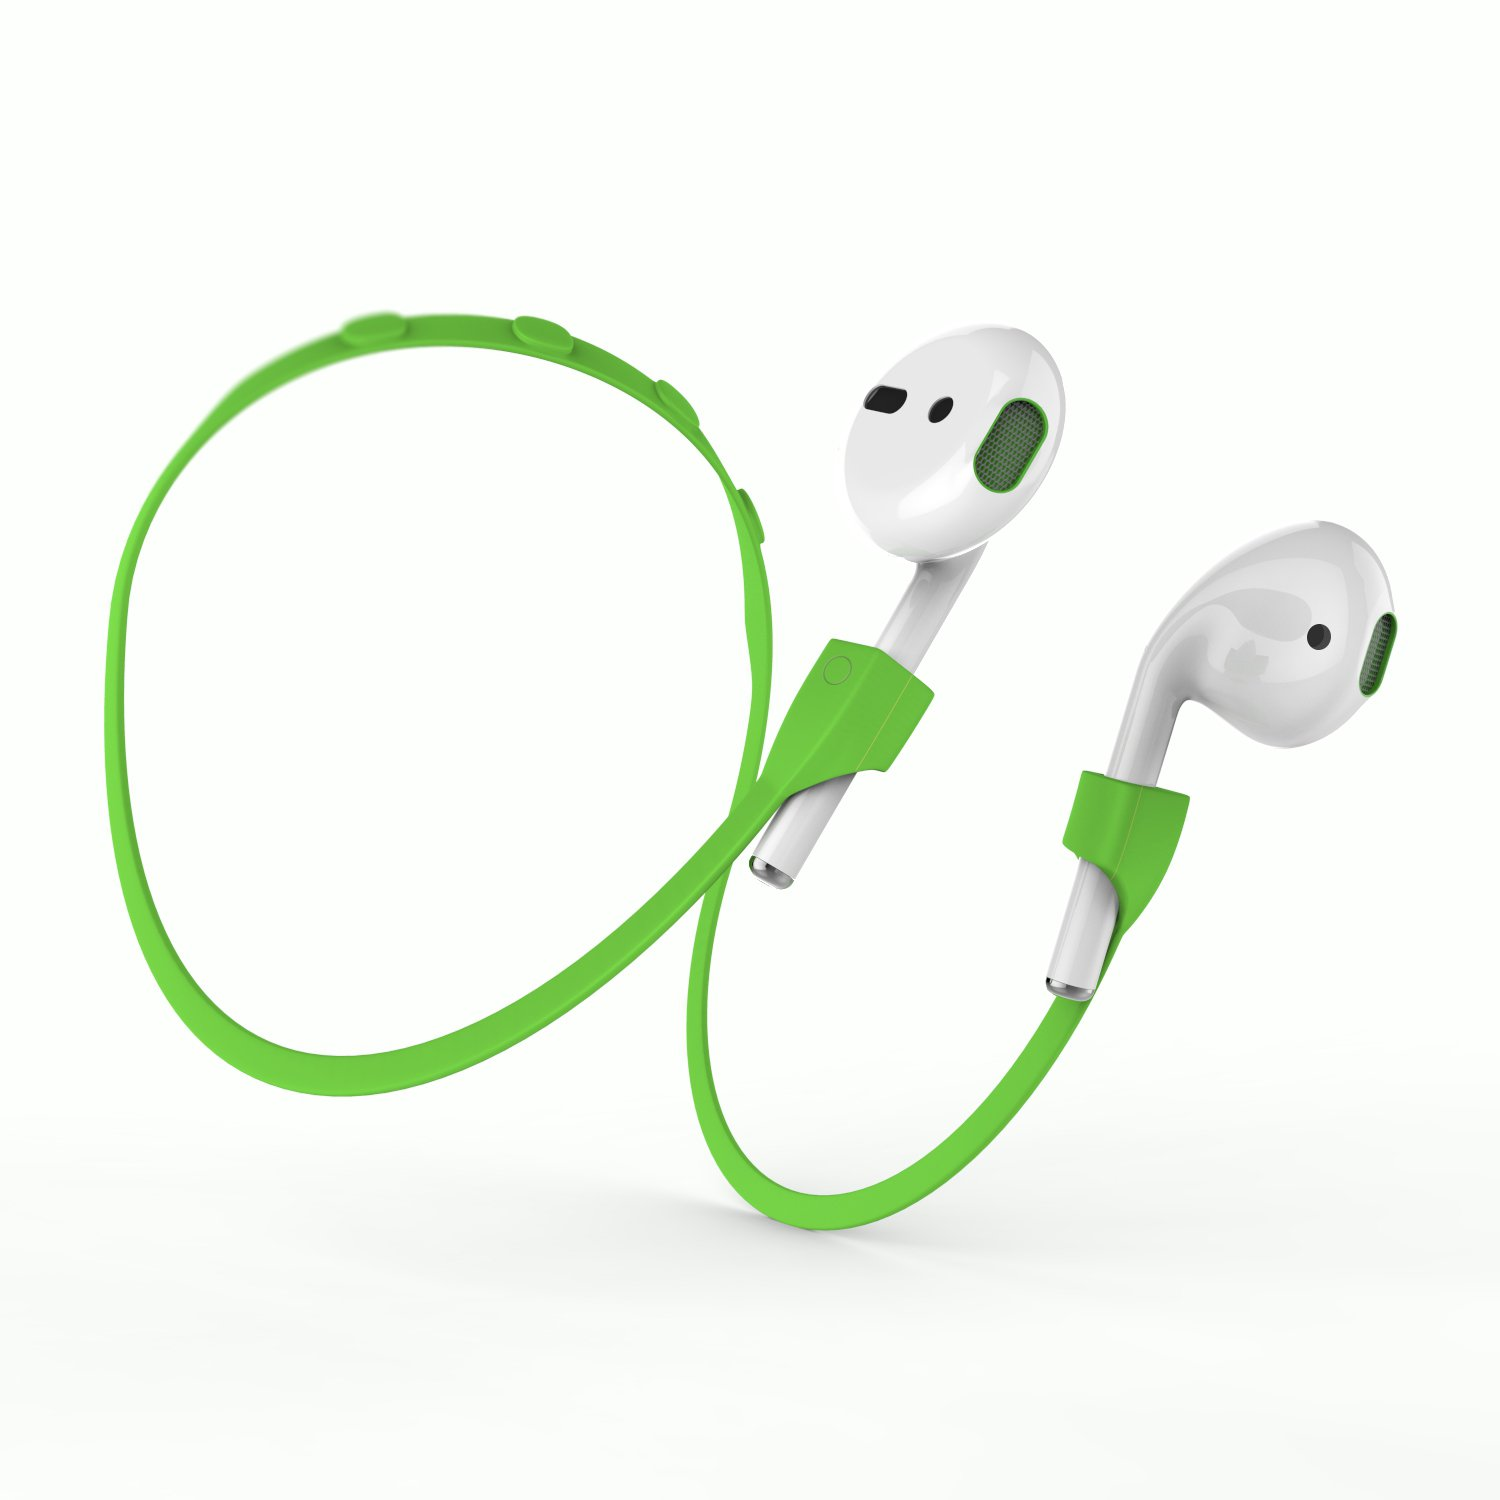 Airpods Strap, MeanLove Silicone Anti-lost Wire Cable Connector with Magnetotherapy for Airpods (Green)